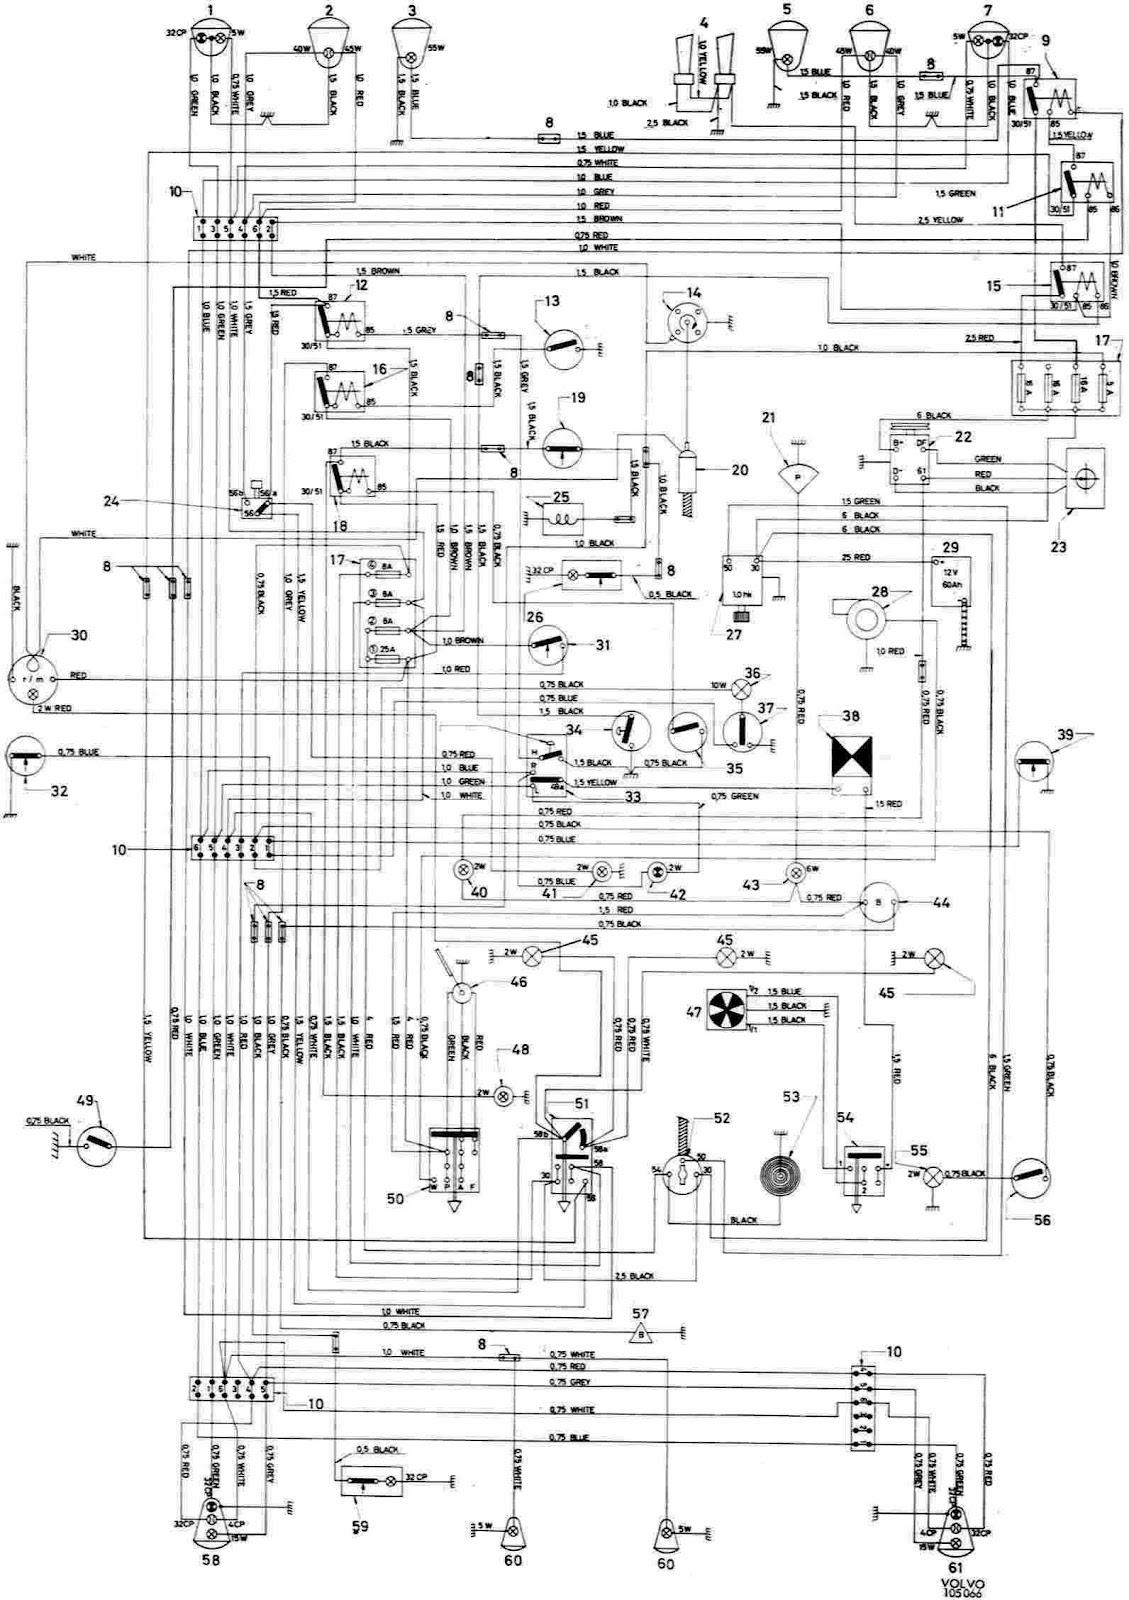 2005 volvo wiring diagram data wiring diagram rh 9 20 3 mercedes aktion tesmer de